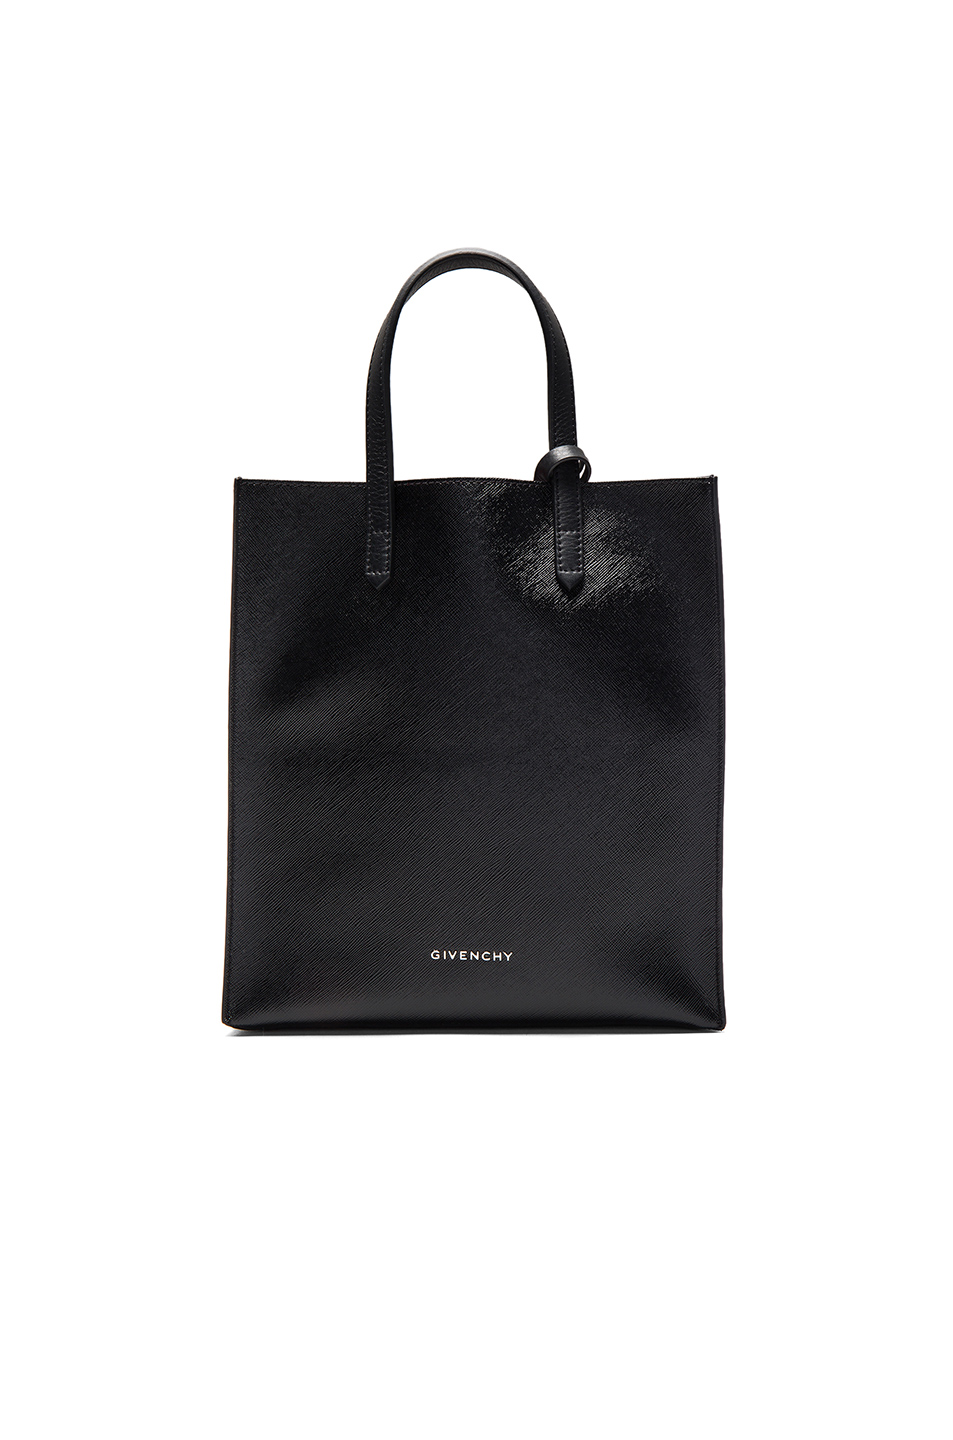 538b1b423d4d Buy Original Givenchy Small Stargate Coated Canvas Tote at Indonesia ...